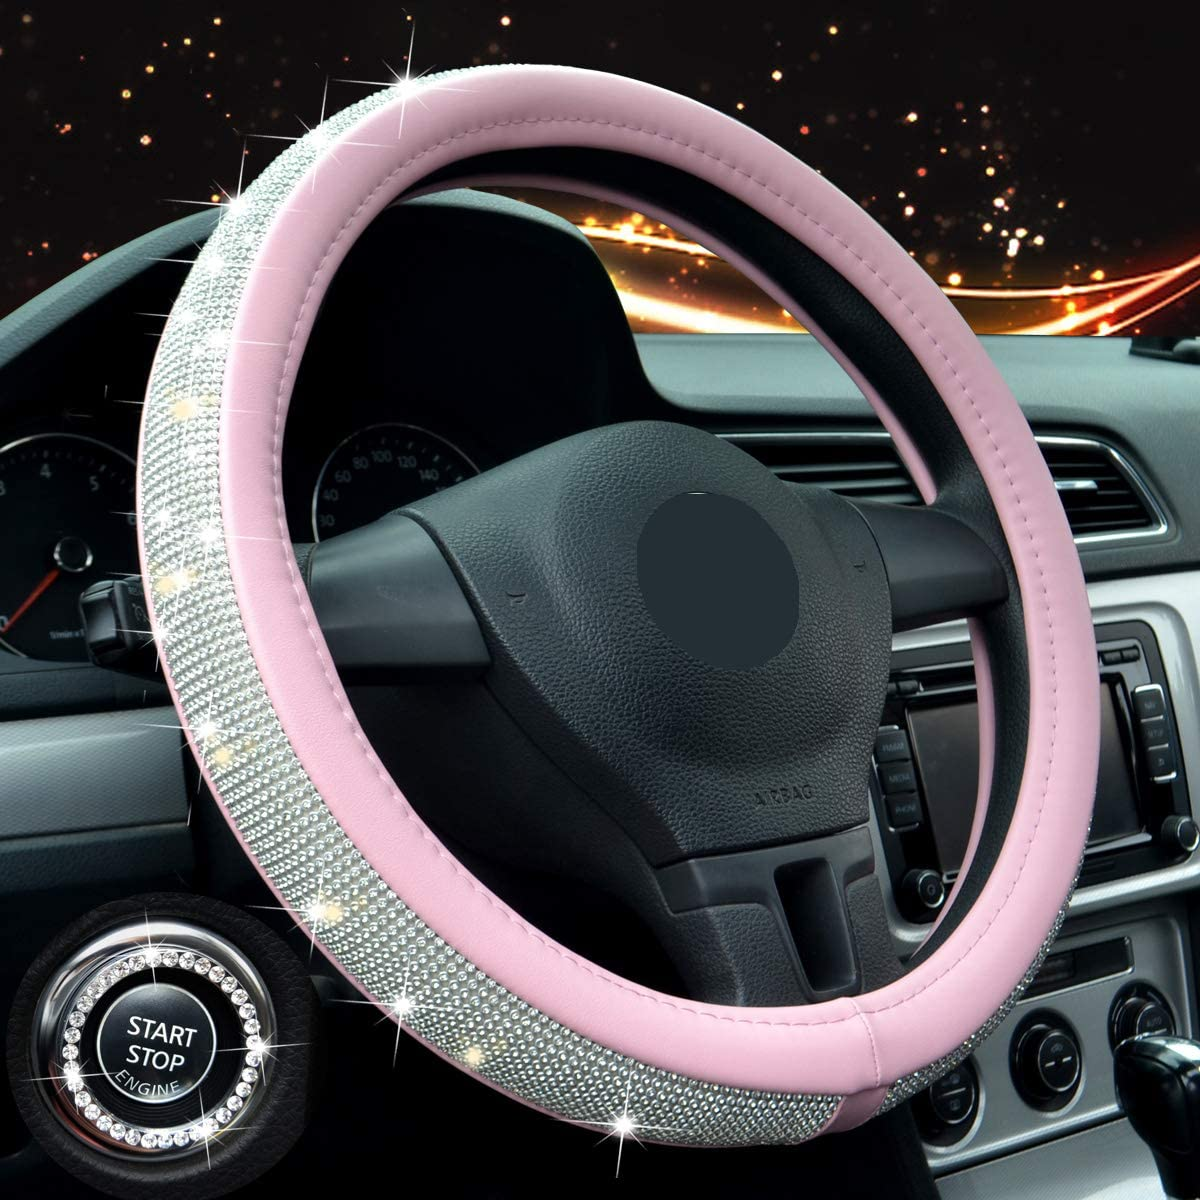 Crystal Steering Wheel Cover For Girls.Universal 15inch Rhinestones Bling Leather SUV Car Wheel Protector A pink steering wheel cover